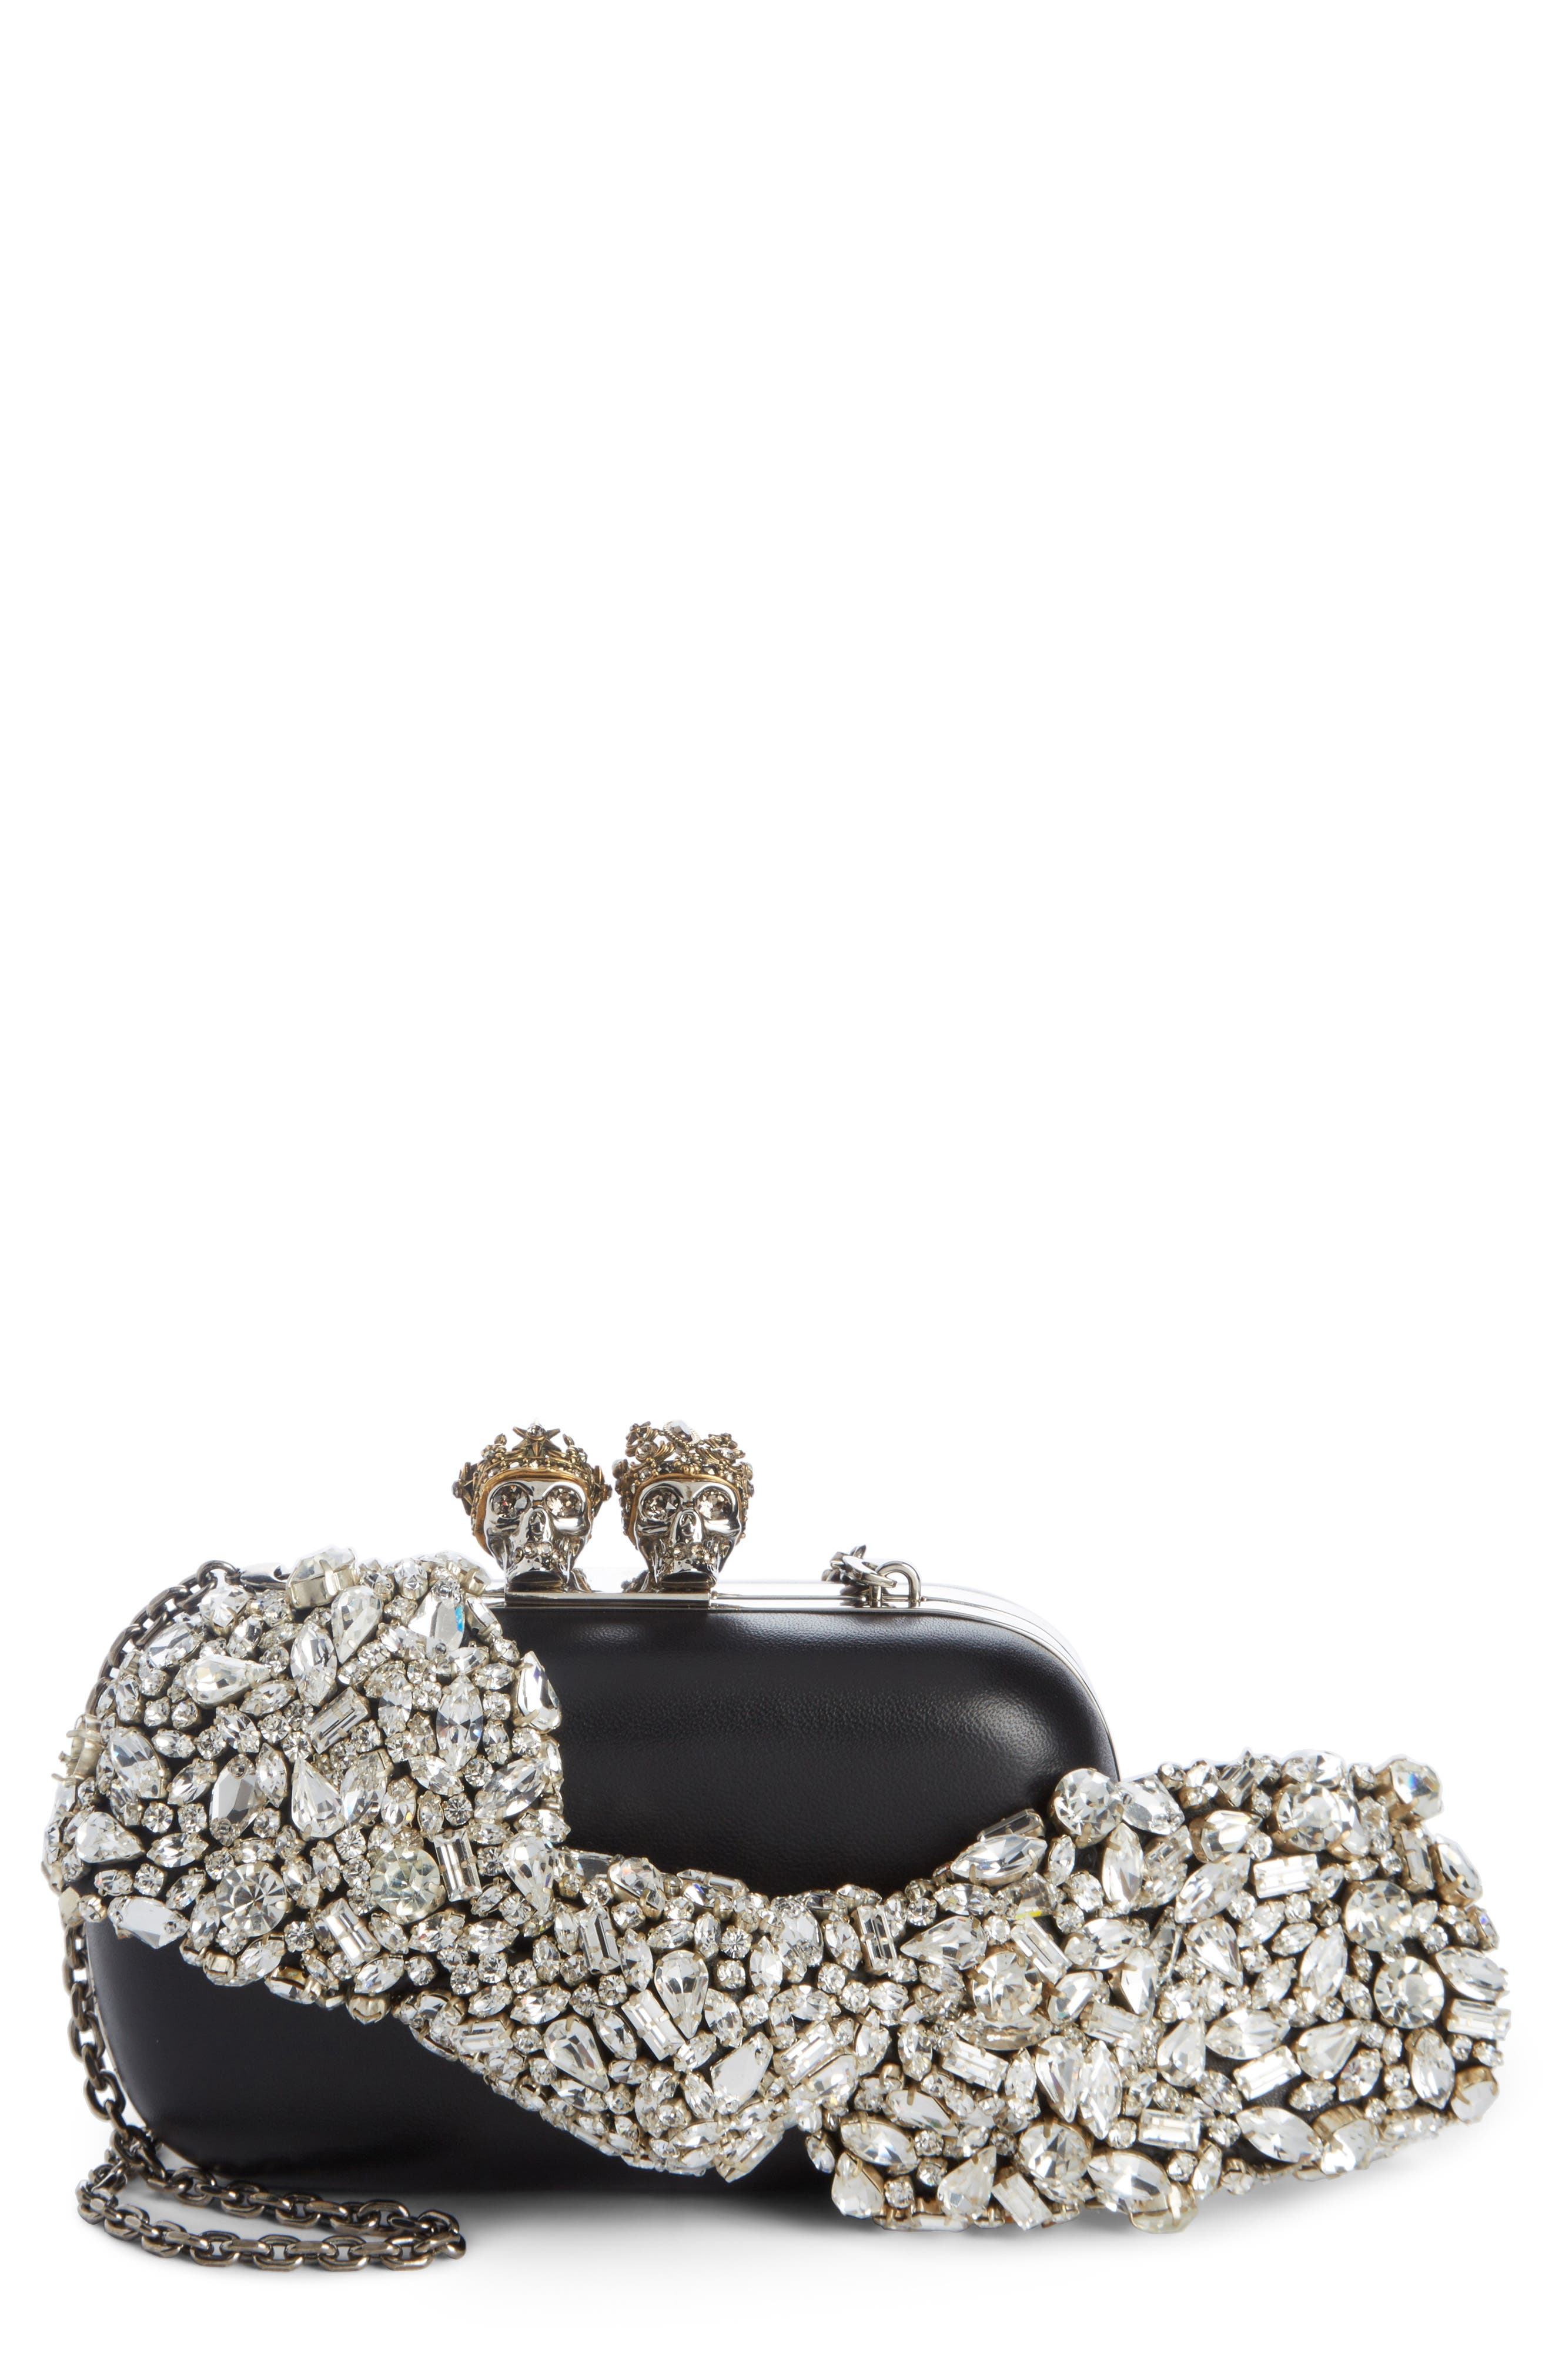 Queen & King Crystal Bow Clutch,                             Main thumbnail 1, color,                             001